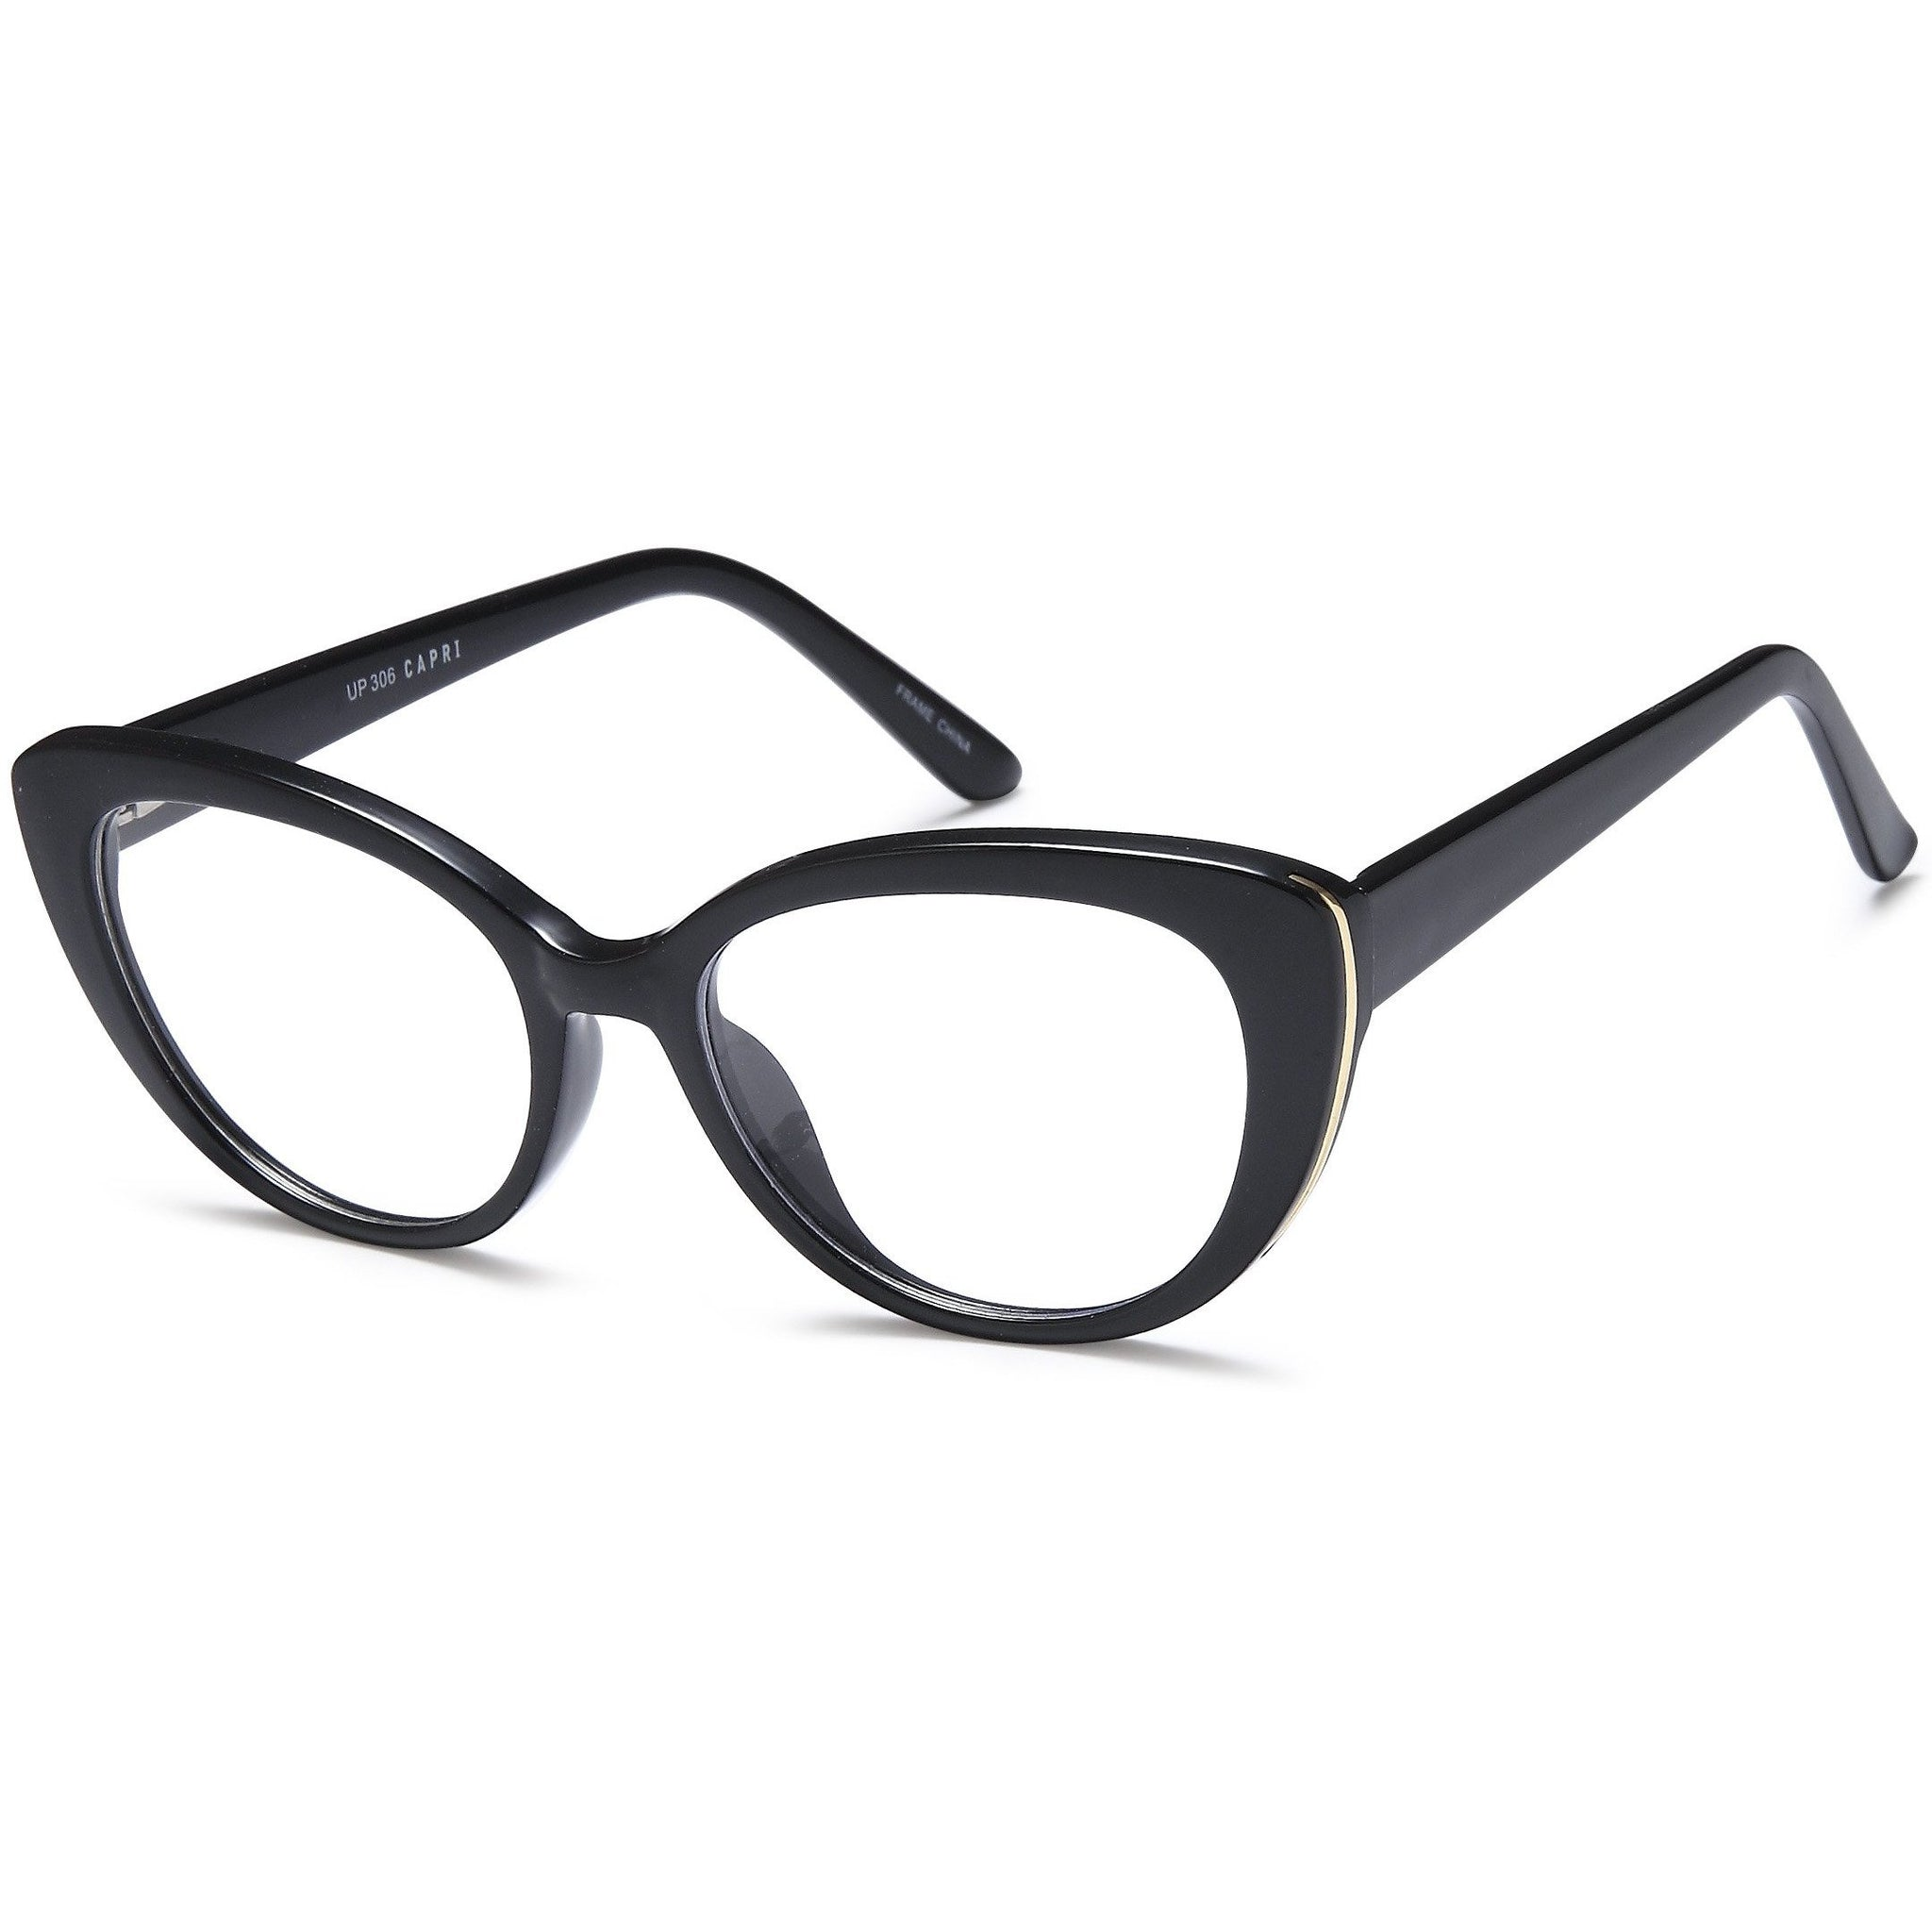 2U Prescription Glasses UP 306 Optical Eyeglasses Frame